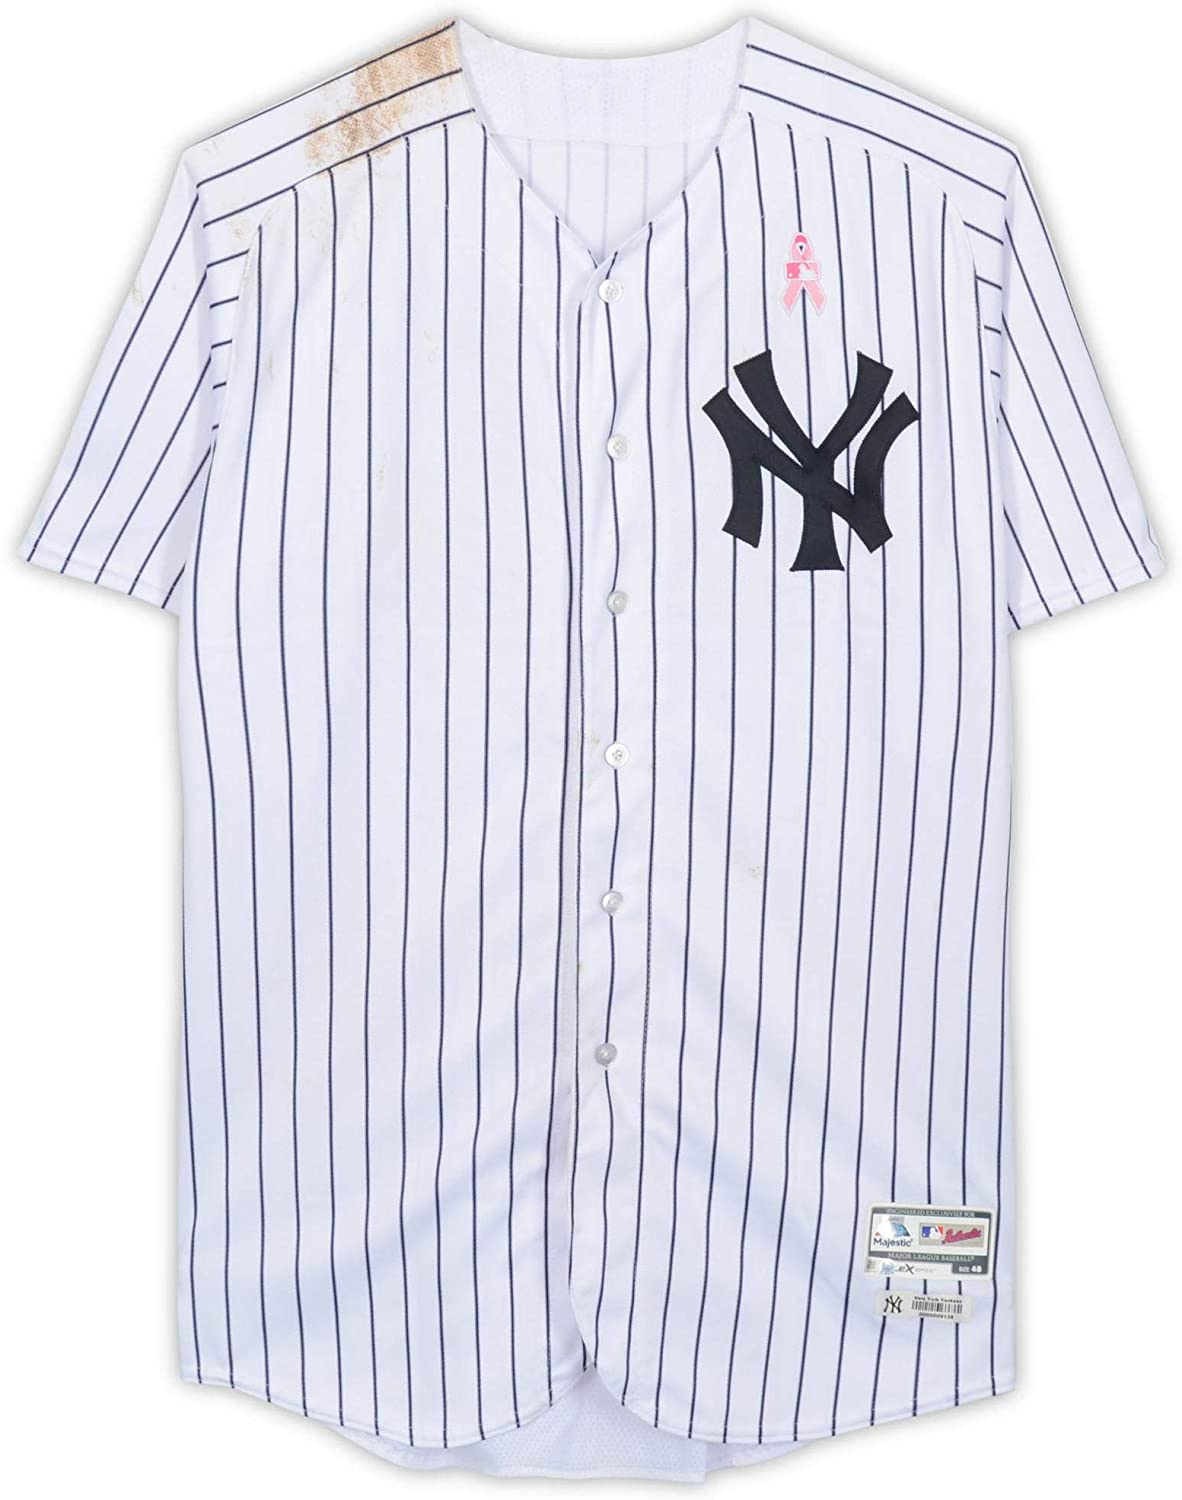 Gary Sanchez New York Yankees Game-Used #24 White Pinstripe Jersey with Mother's Day Patch vs. Oakland Athletics on May 13, 2018 - Fanatics Authentic Certified